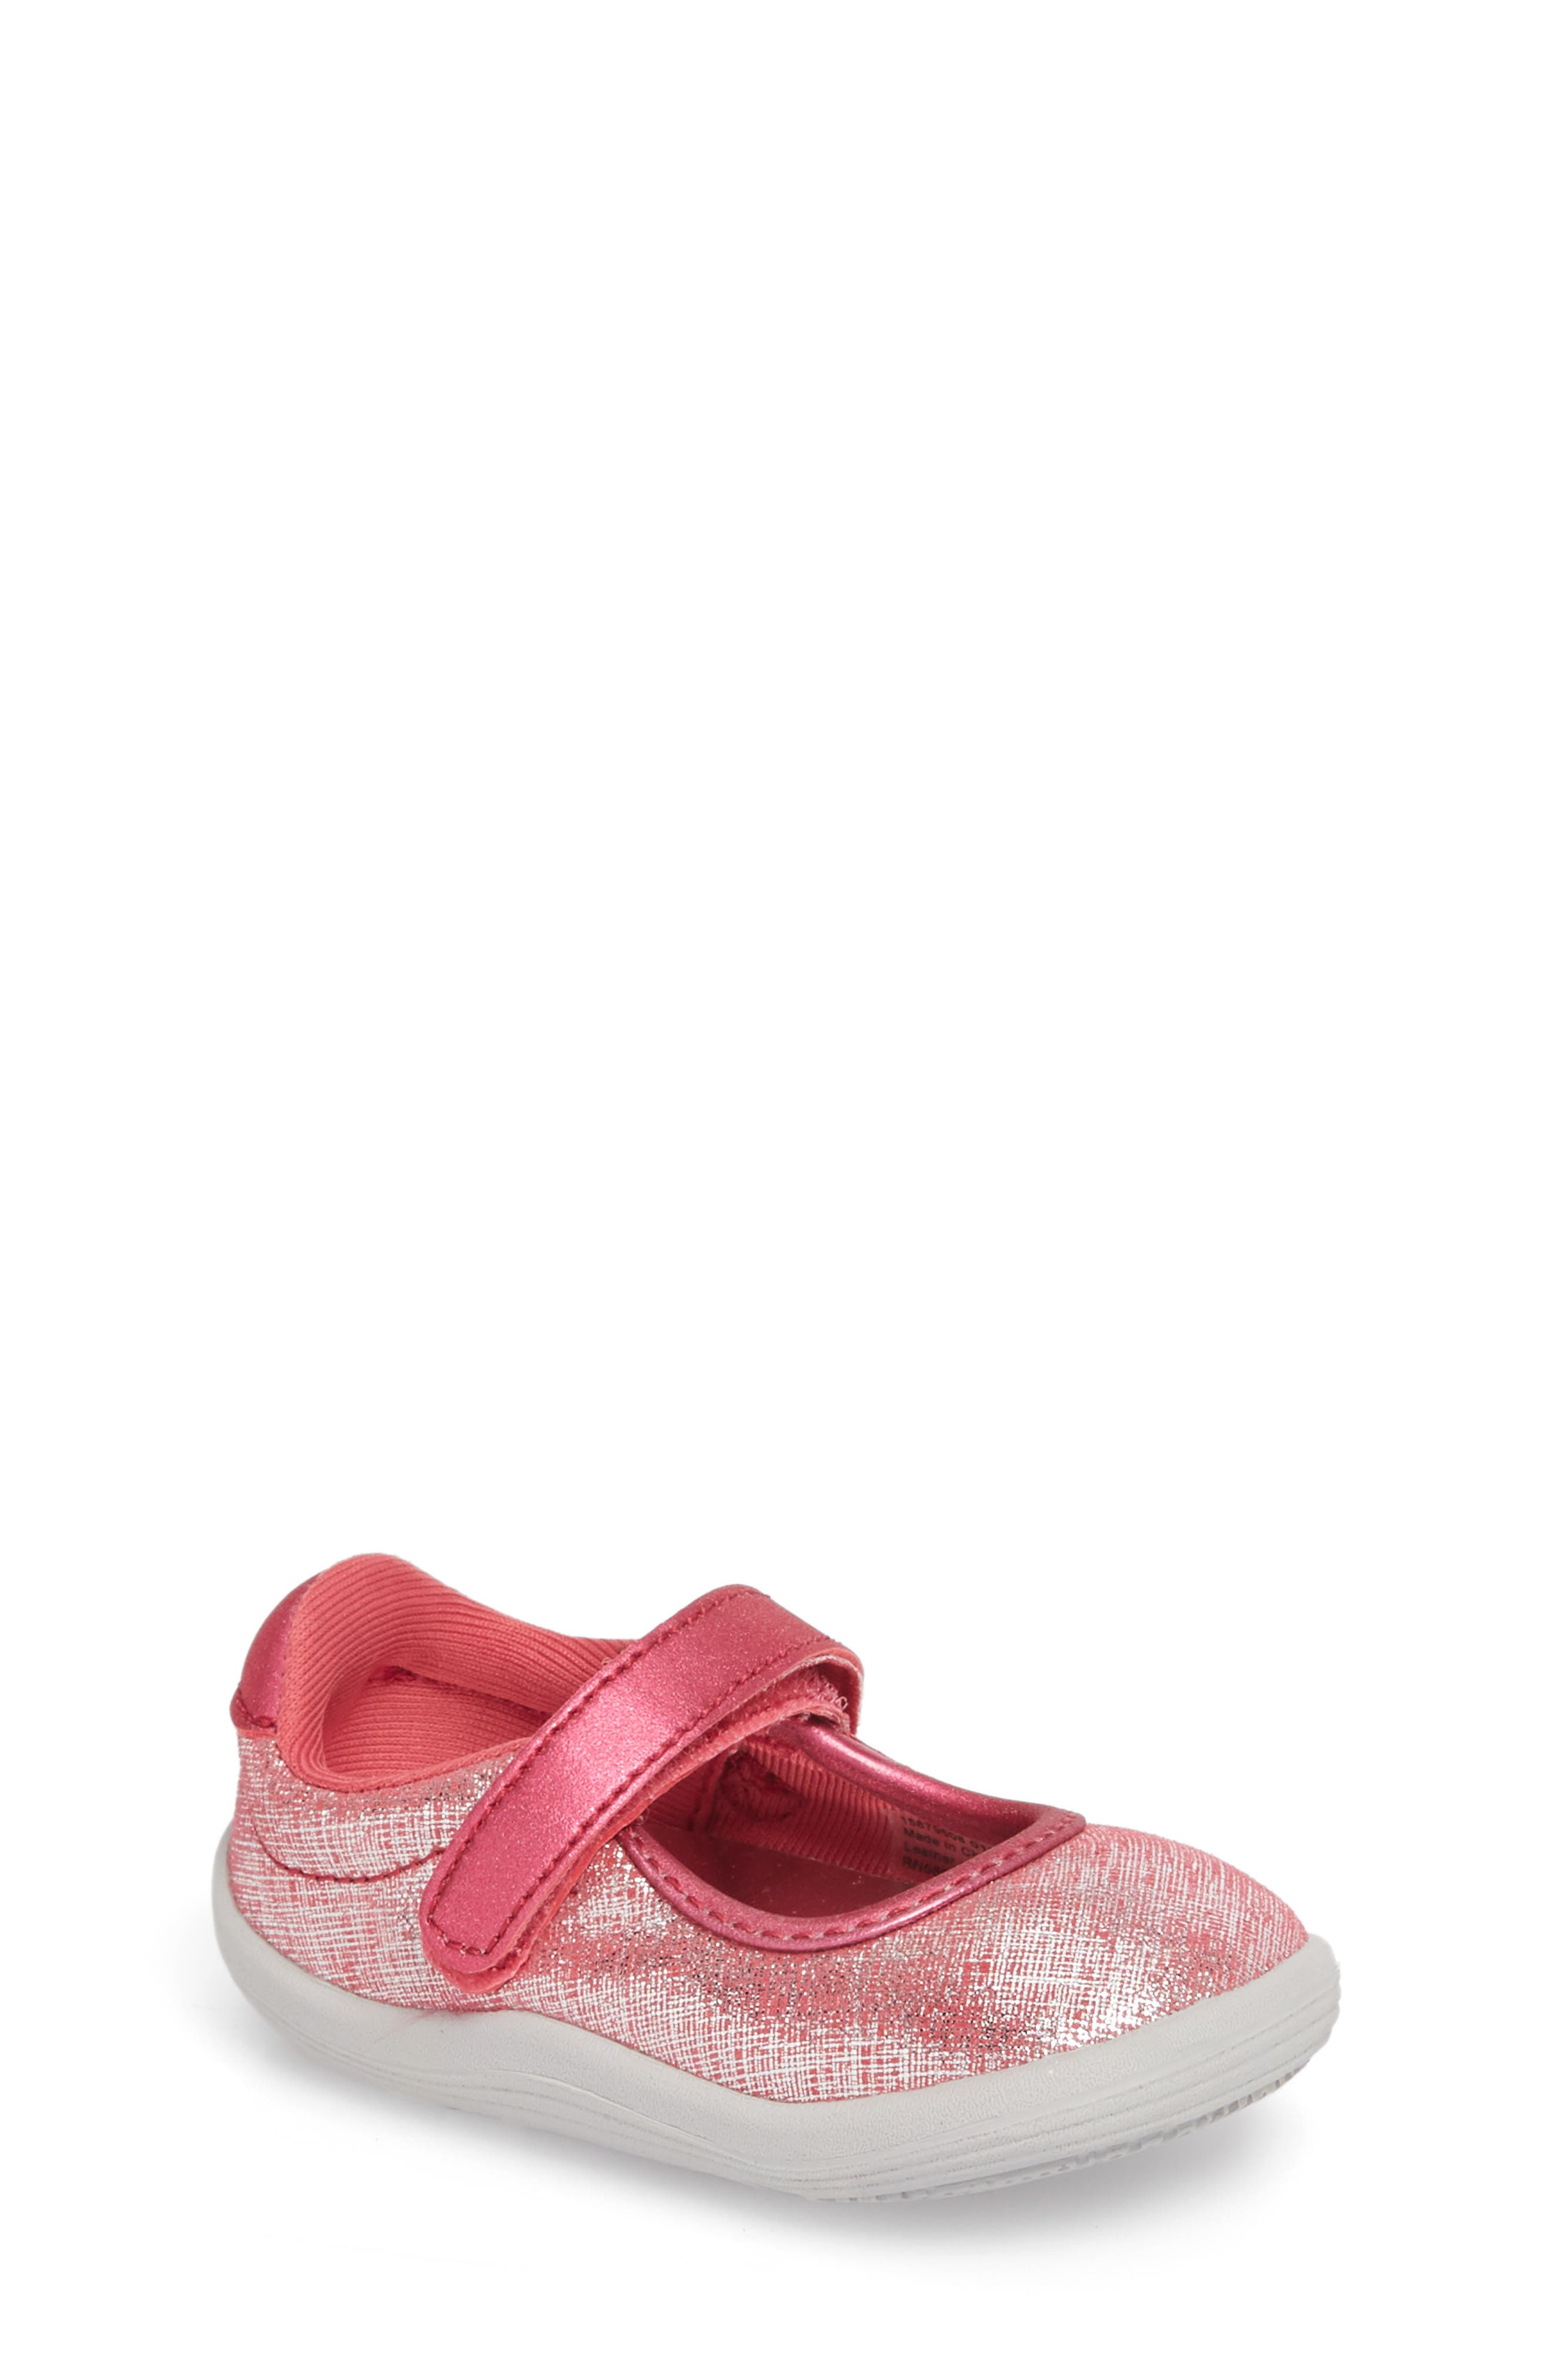 Nora Metallic Mary Jane Sneaker,                         Main,                         color, Pink Shimmer Leather